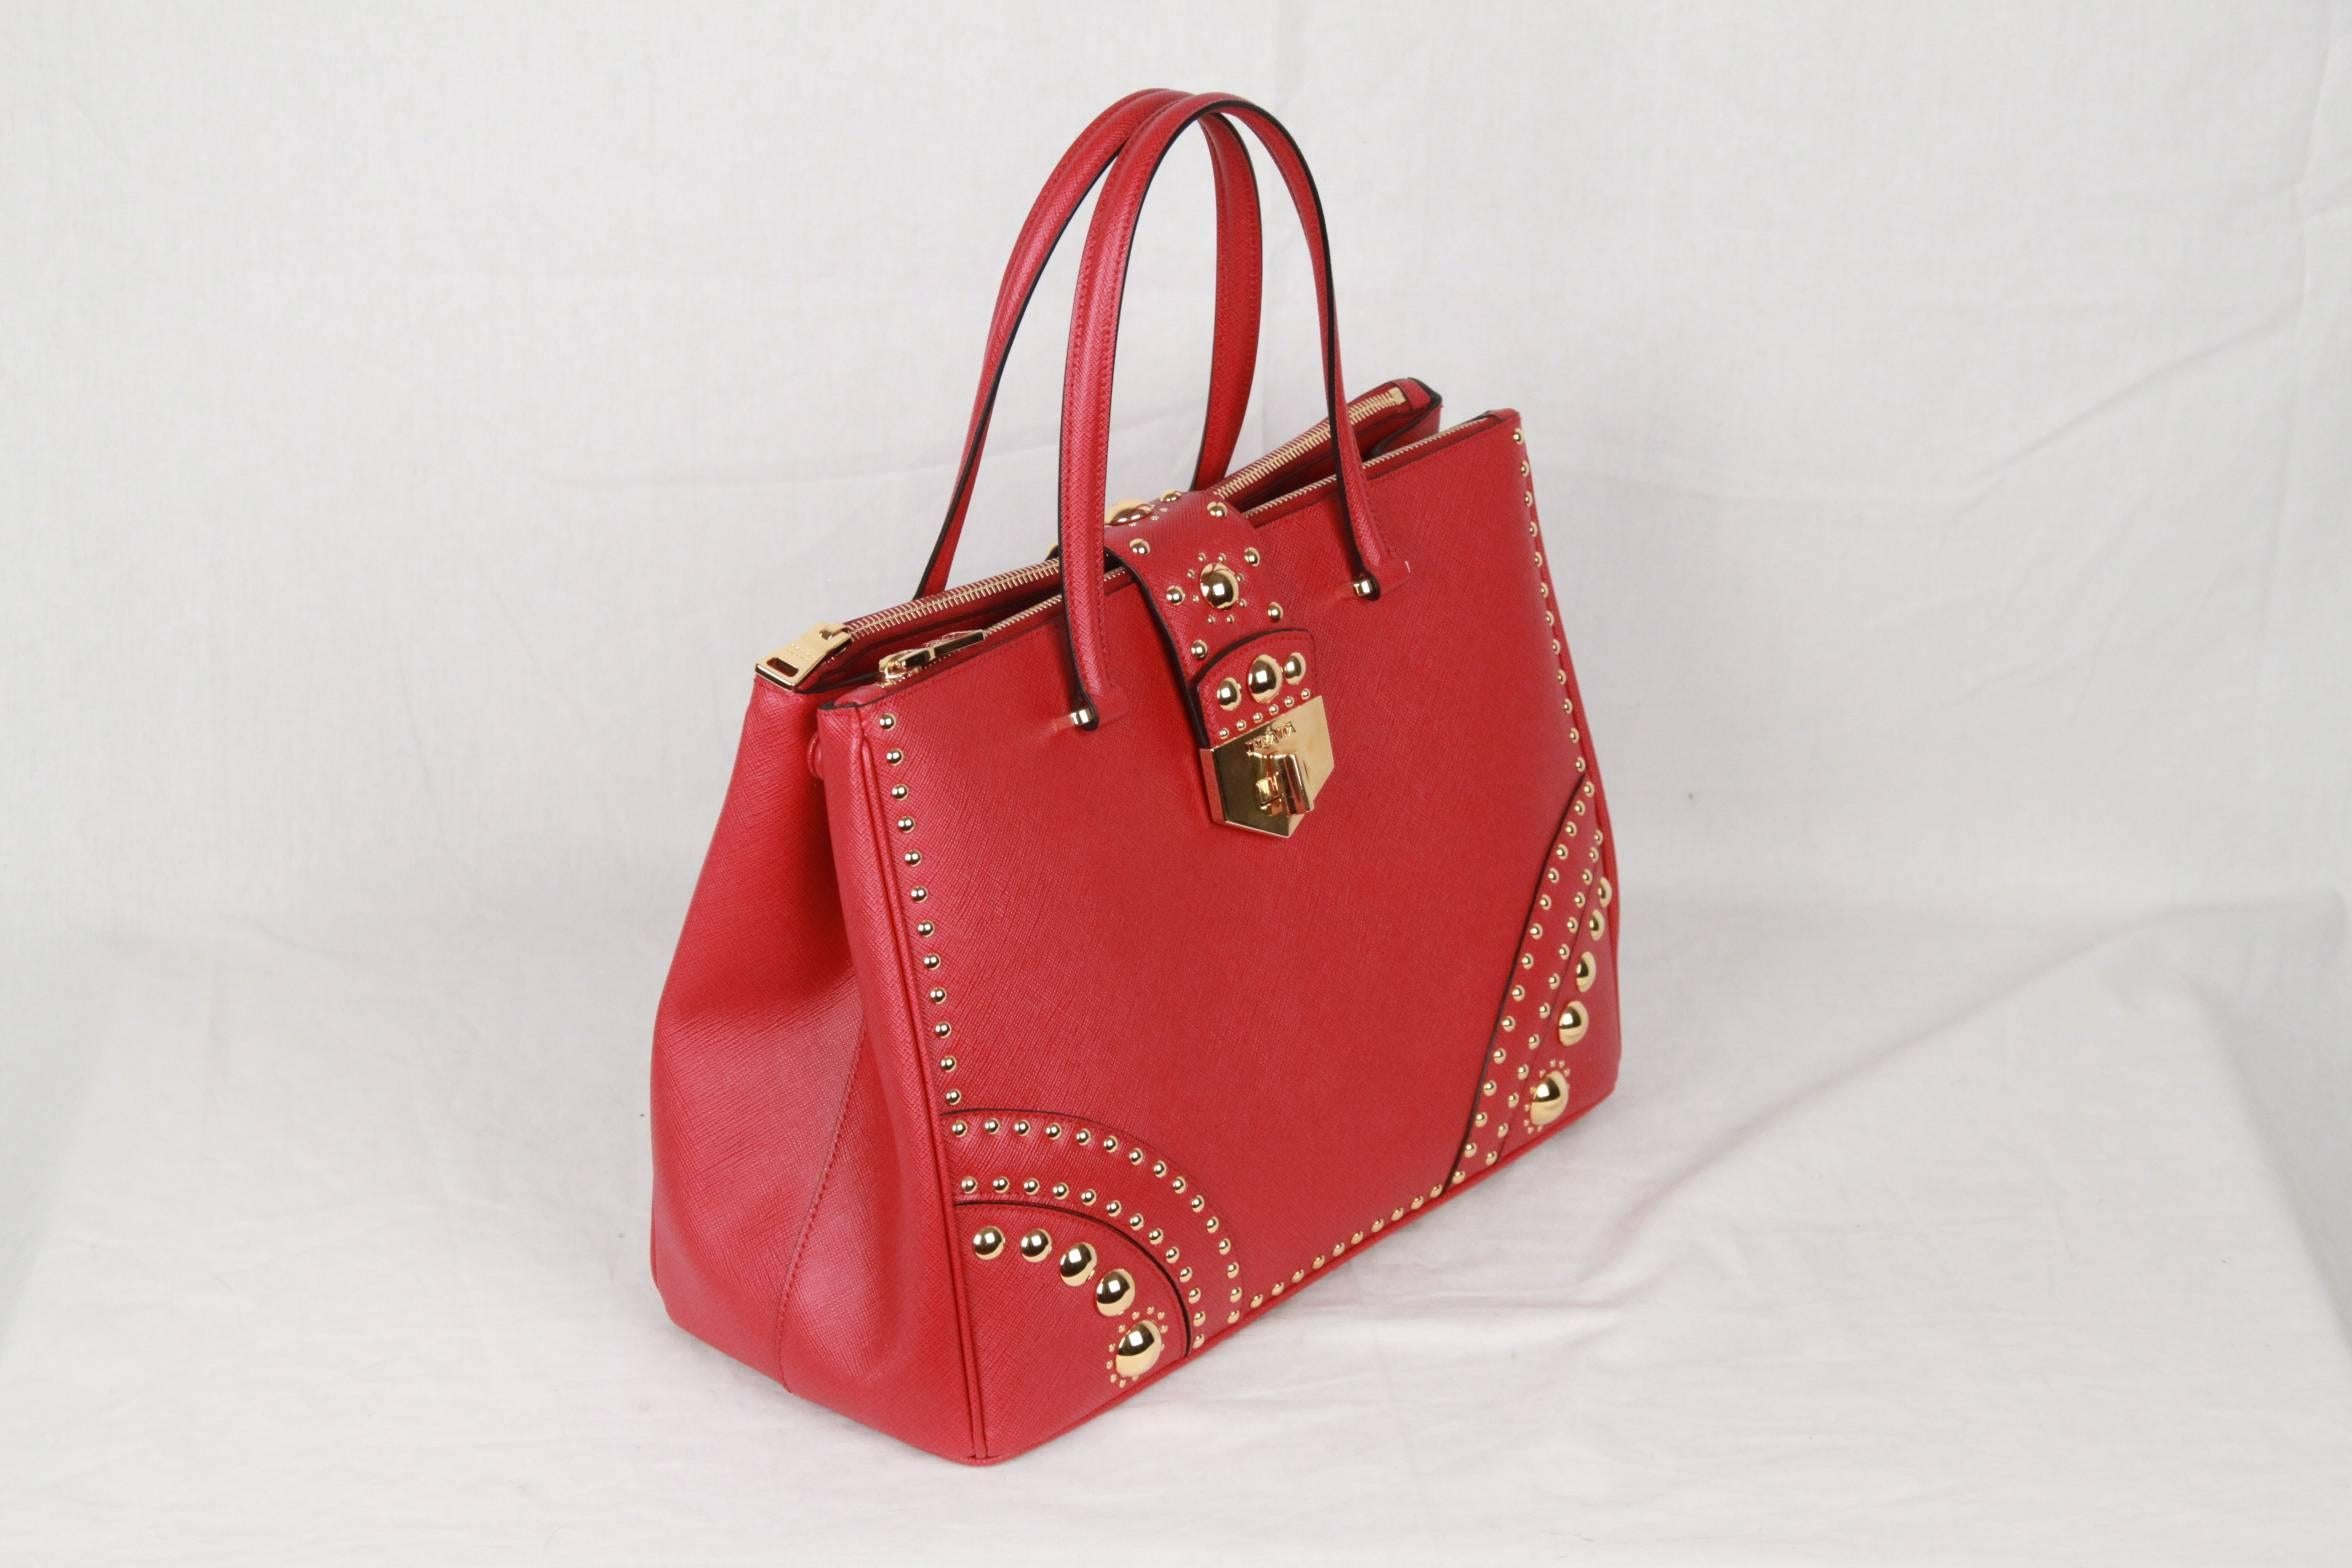 a04089093118 ... cheap prada red fuoco saffiano leather tote satchel w metal studs in  new condition for sale